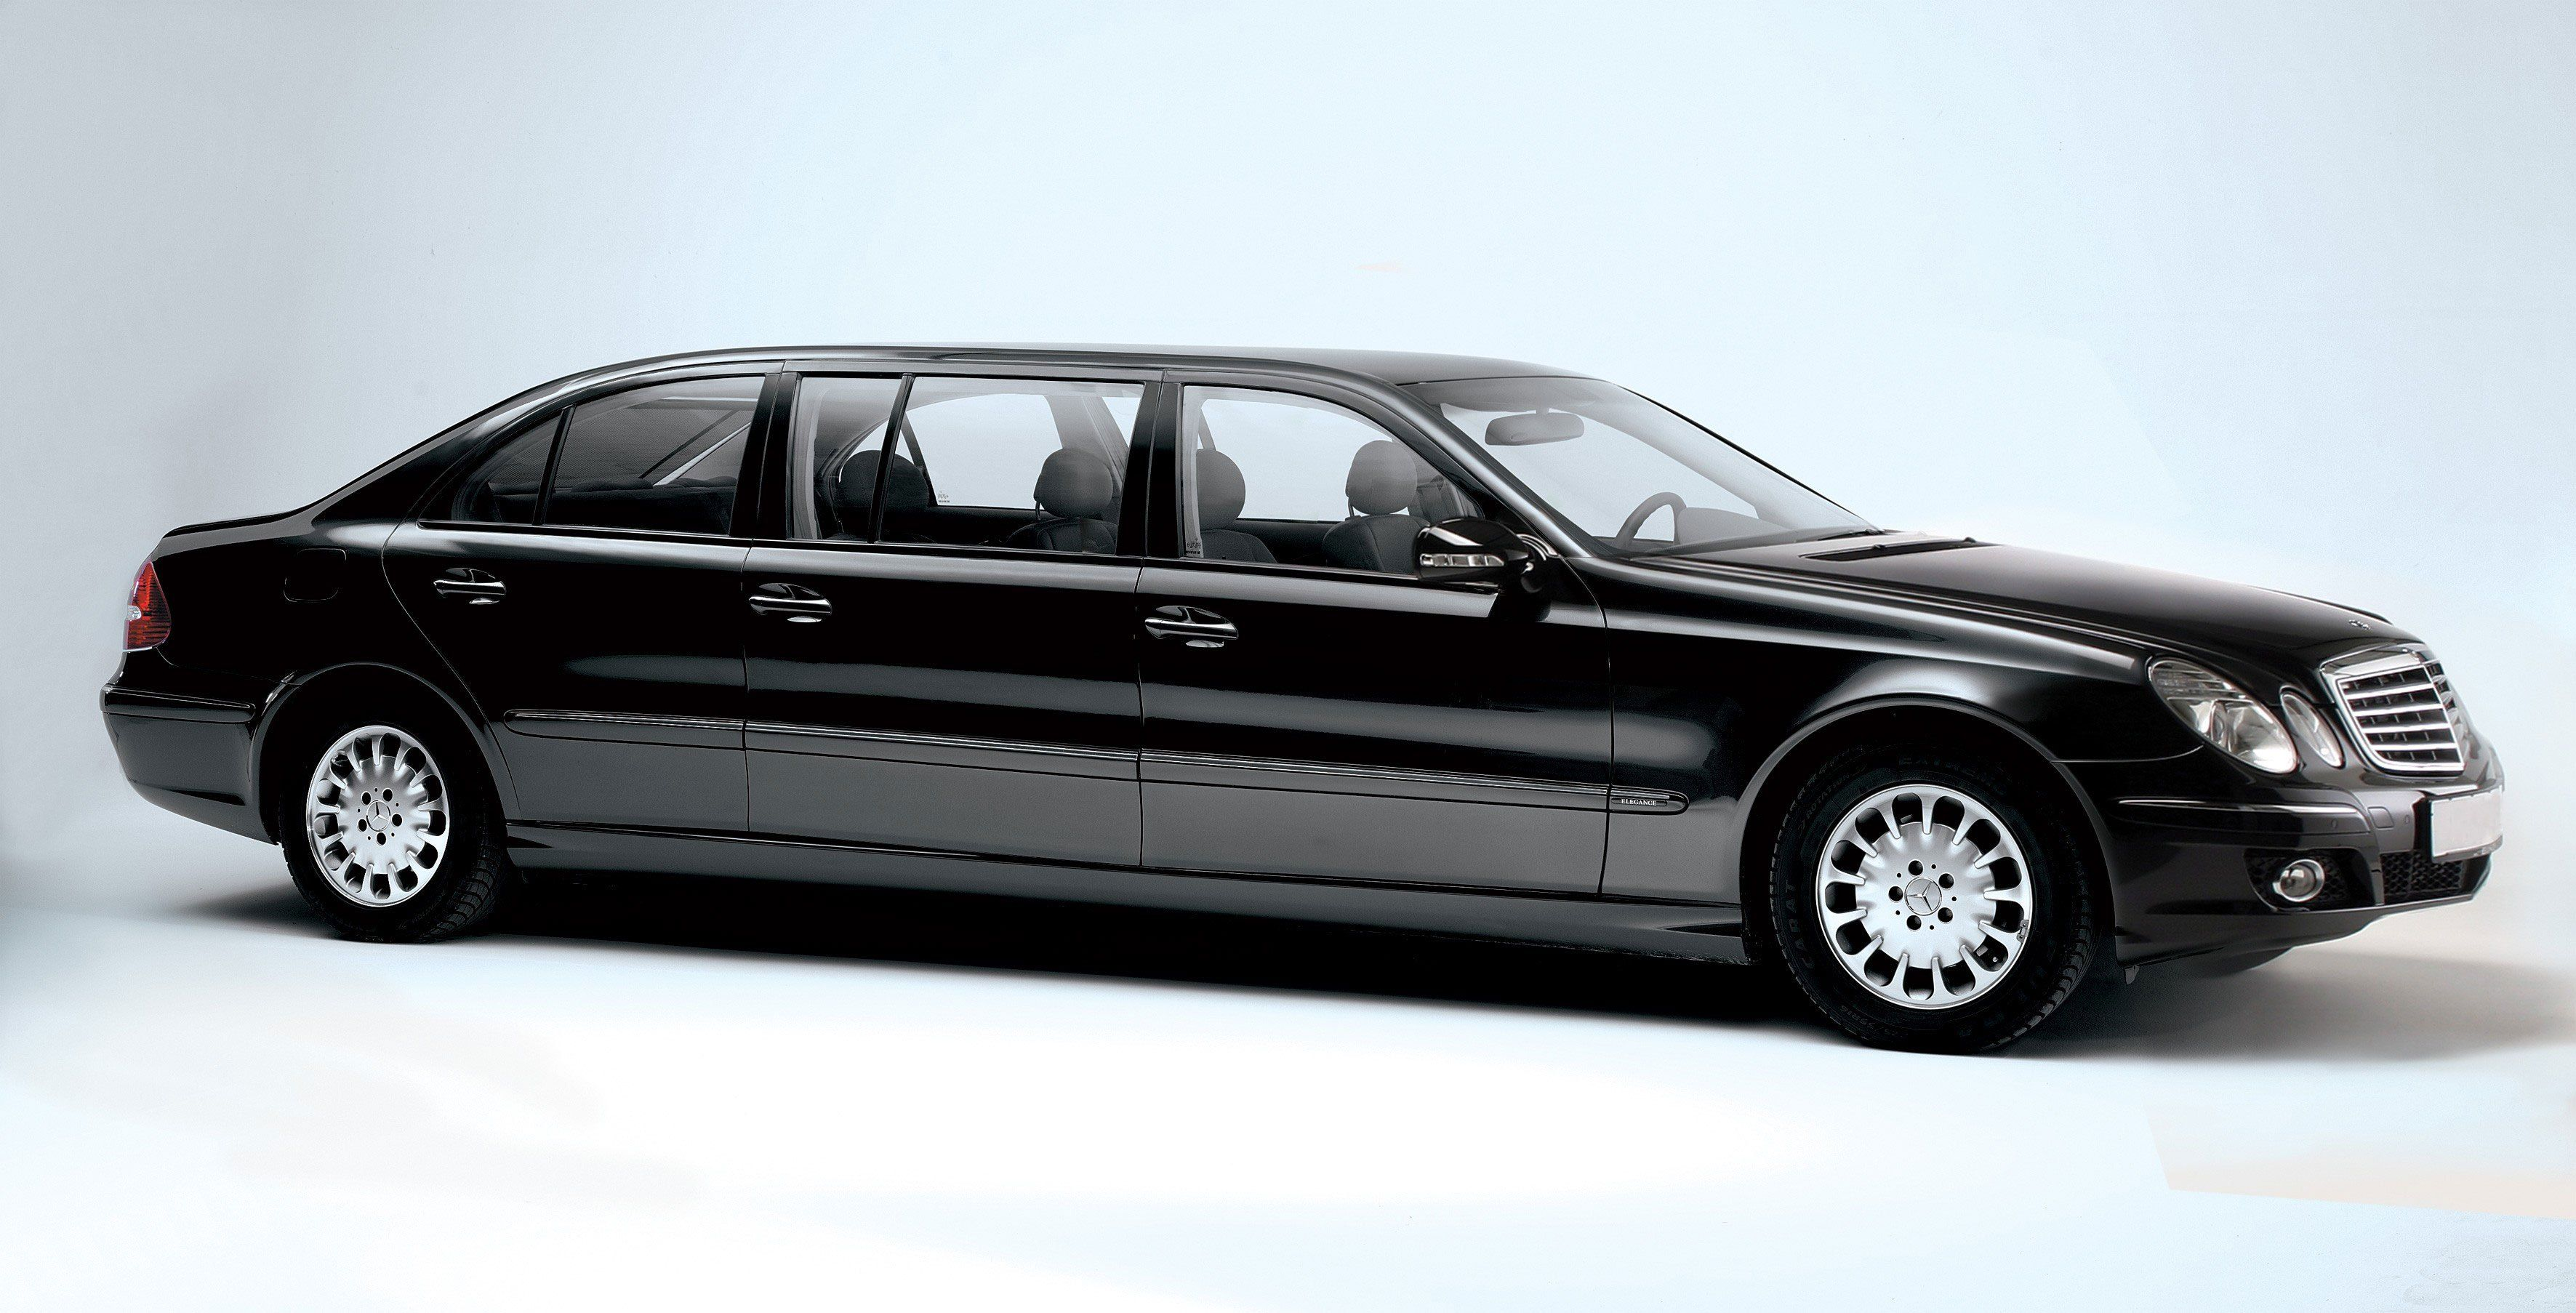 Best Airport Limo Toronto, Limousine Service, Airport Limo